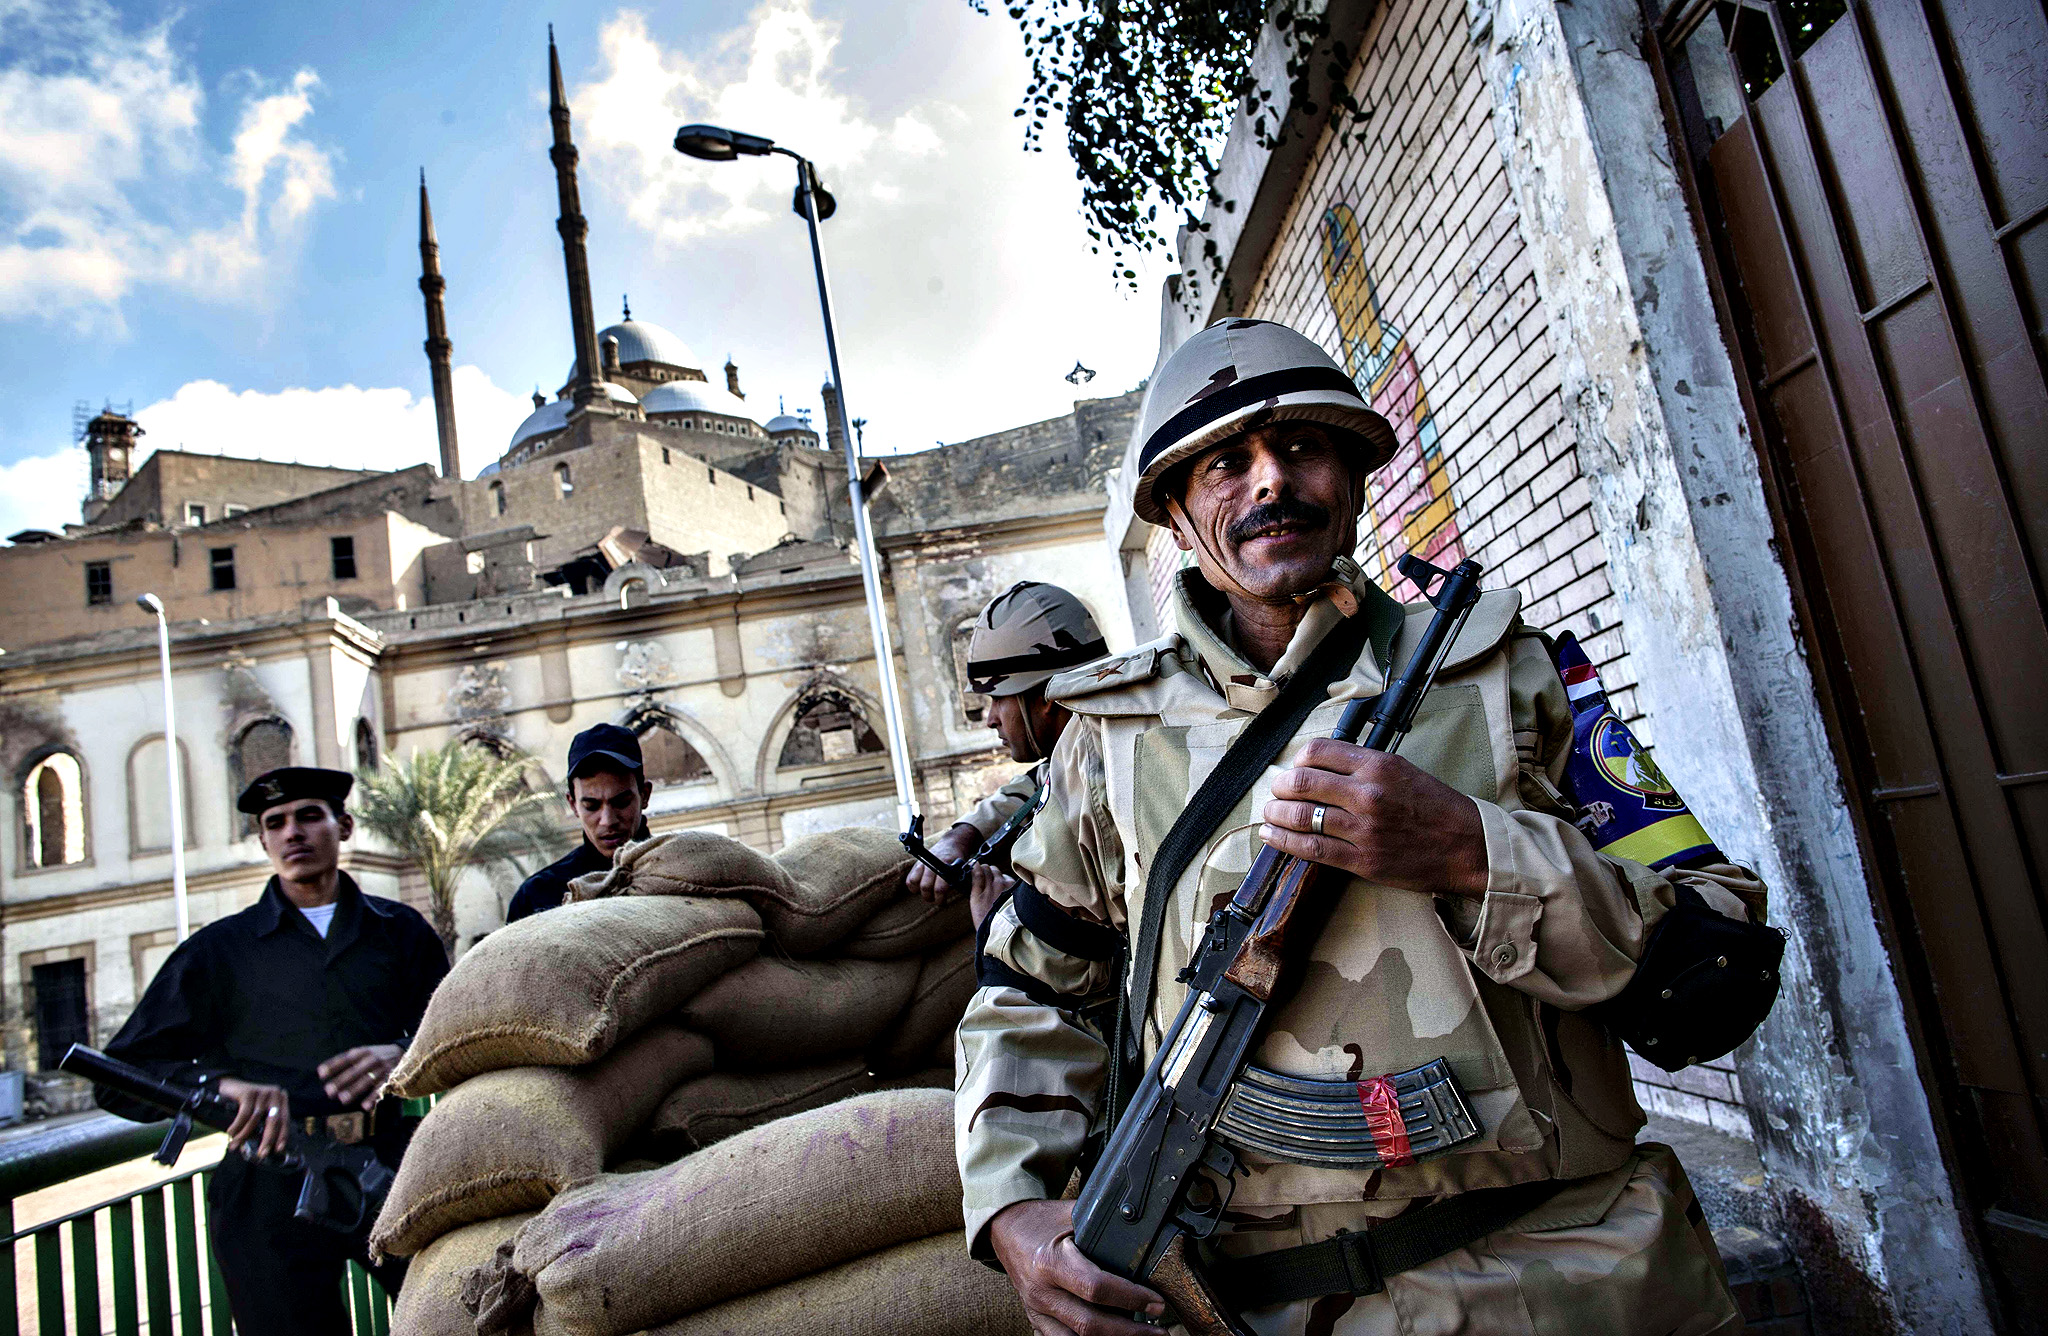 Members of the Egyptian security forces stand guard outside a polling station near The Saladin Citadel (background) on Mokattam hill near the center of Cairo during the second day of voting on a new constitution on January 15, 2014. Egyptians resumed voting in the constitutional referendum, with turnout expected to hold the key to a likely presidential bid by army chief Abdel Fattah al-Sisi after clashes killed nine the previous day.